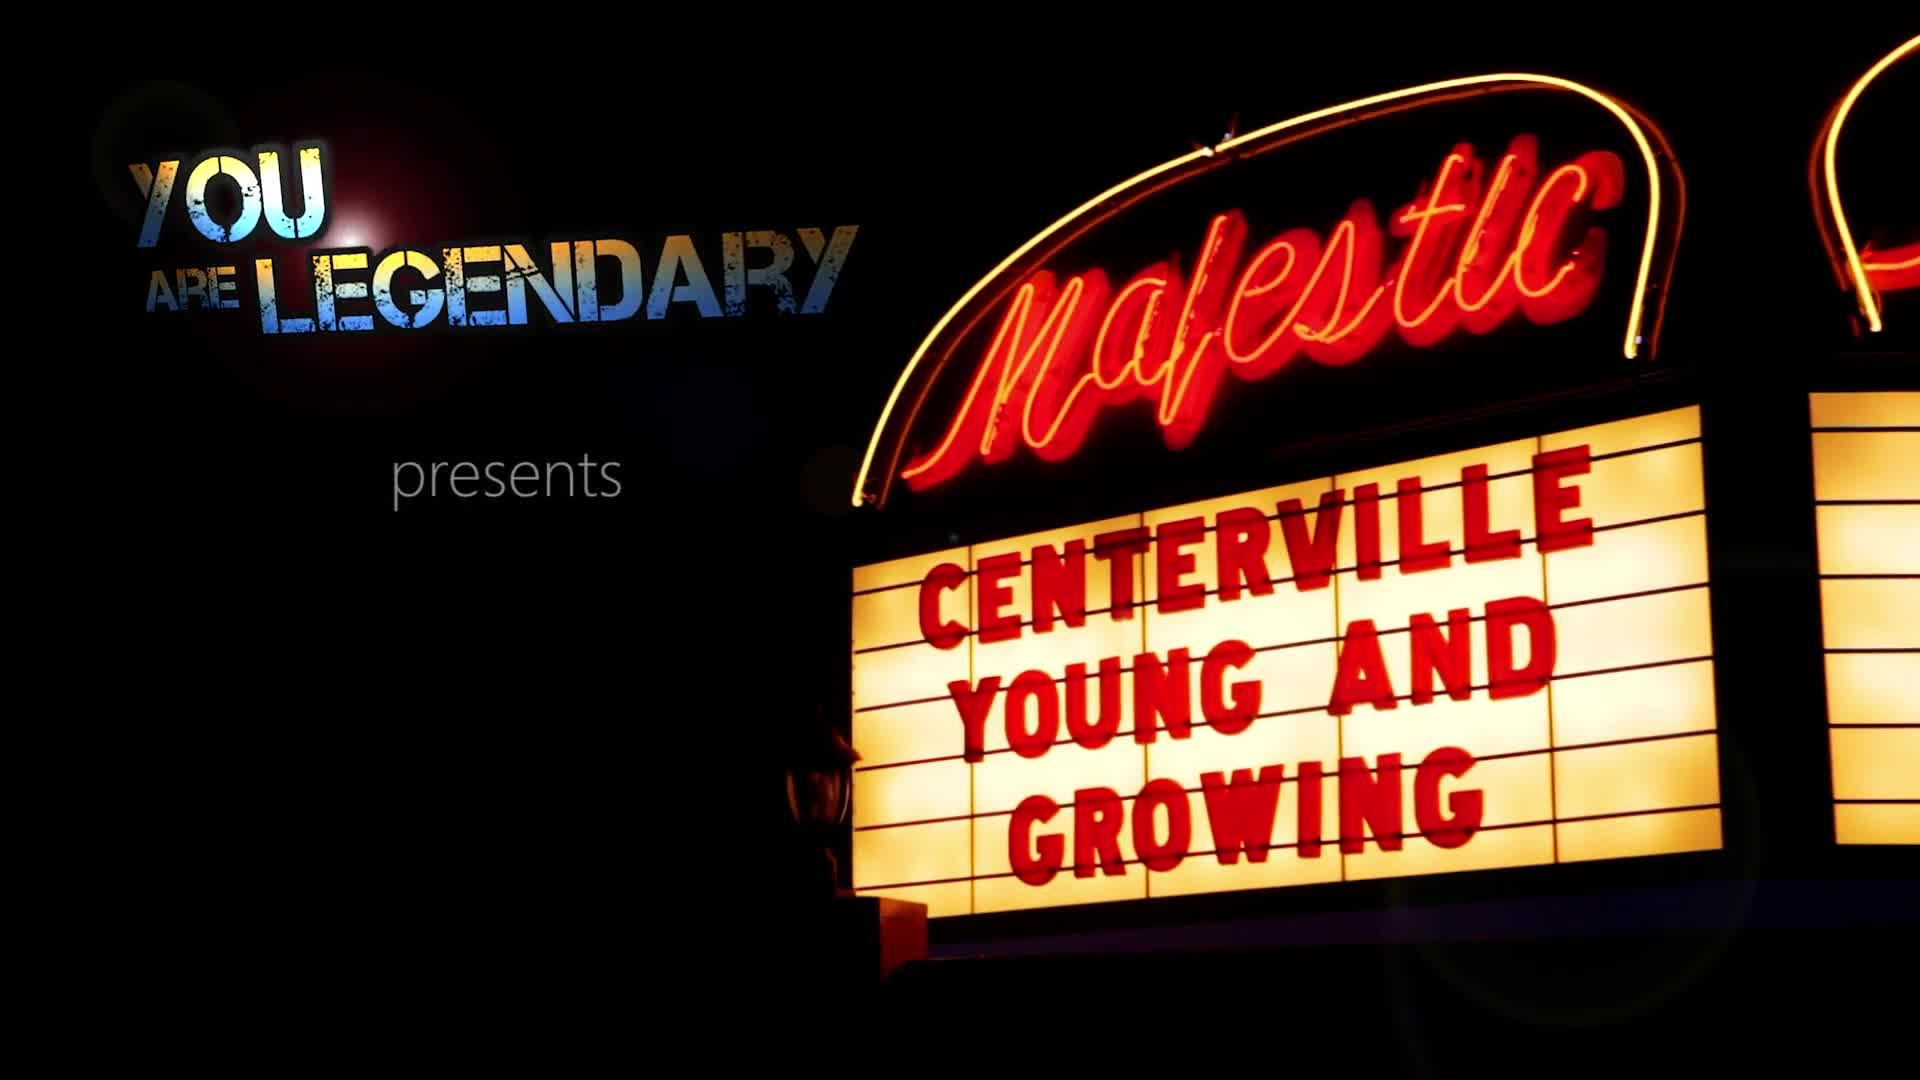 Centerville: Young and Growing